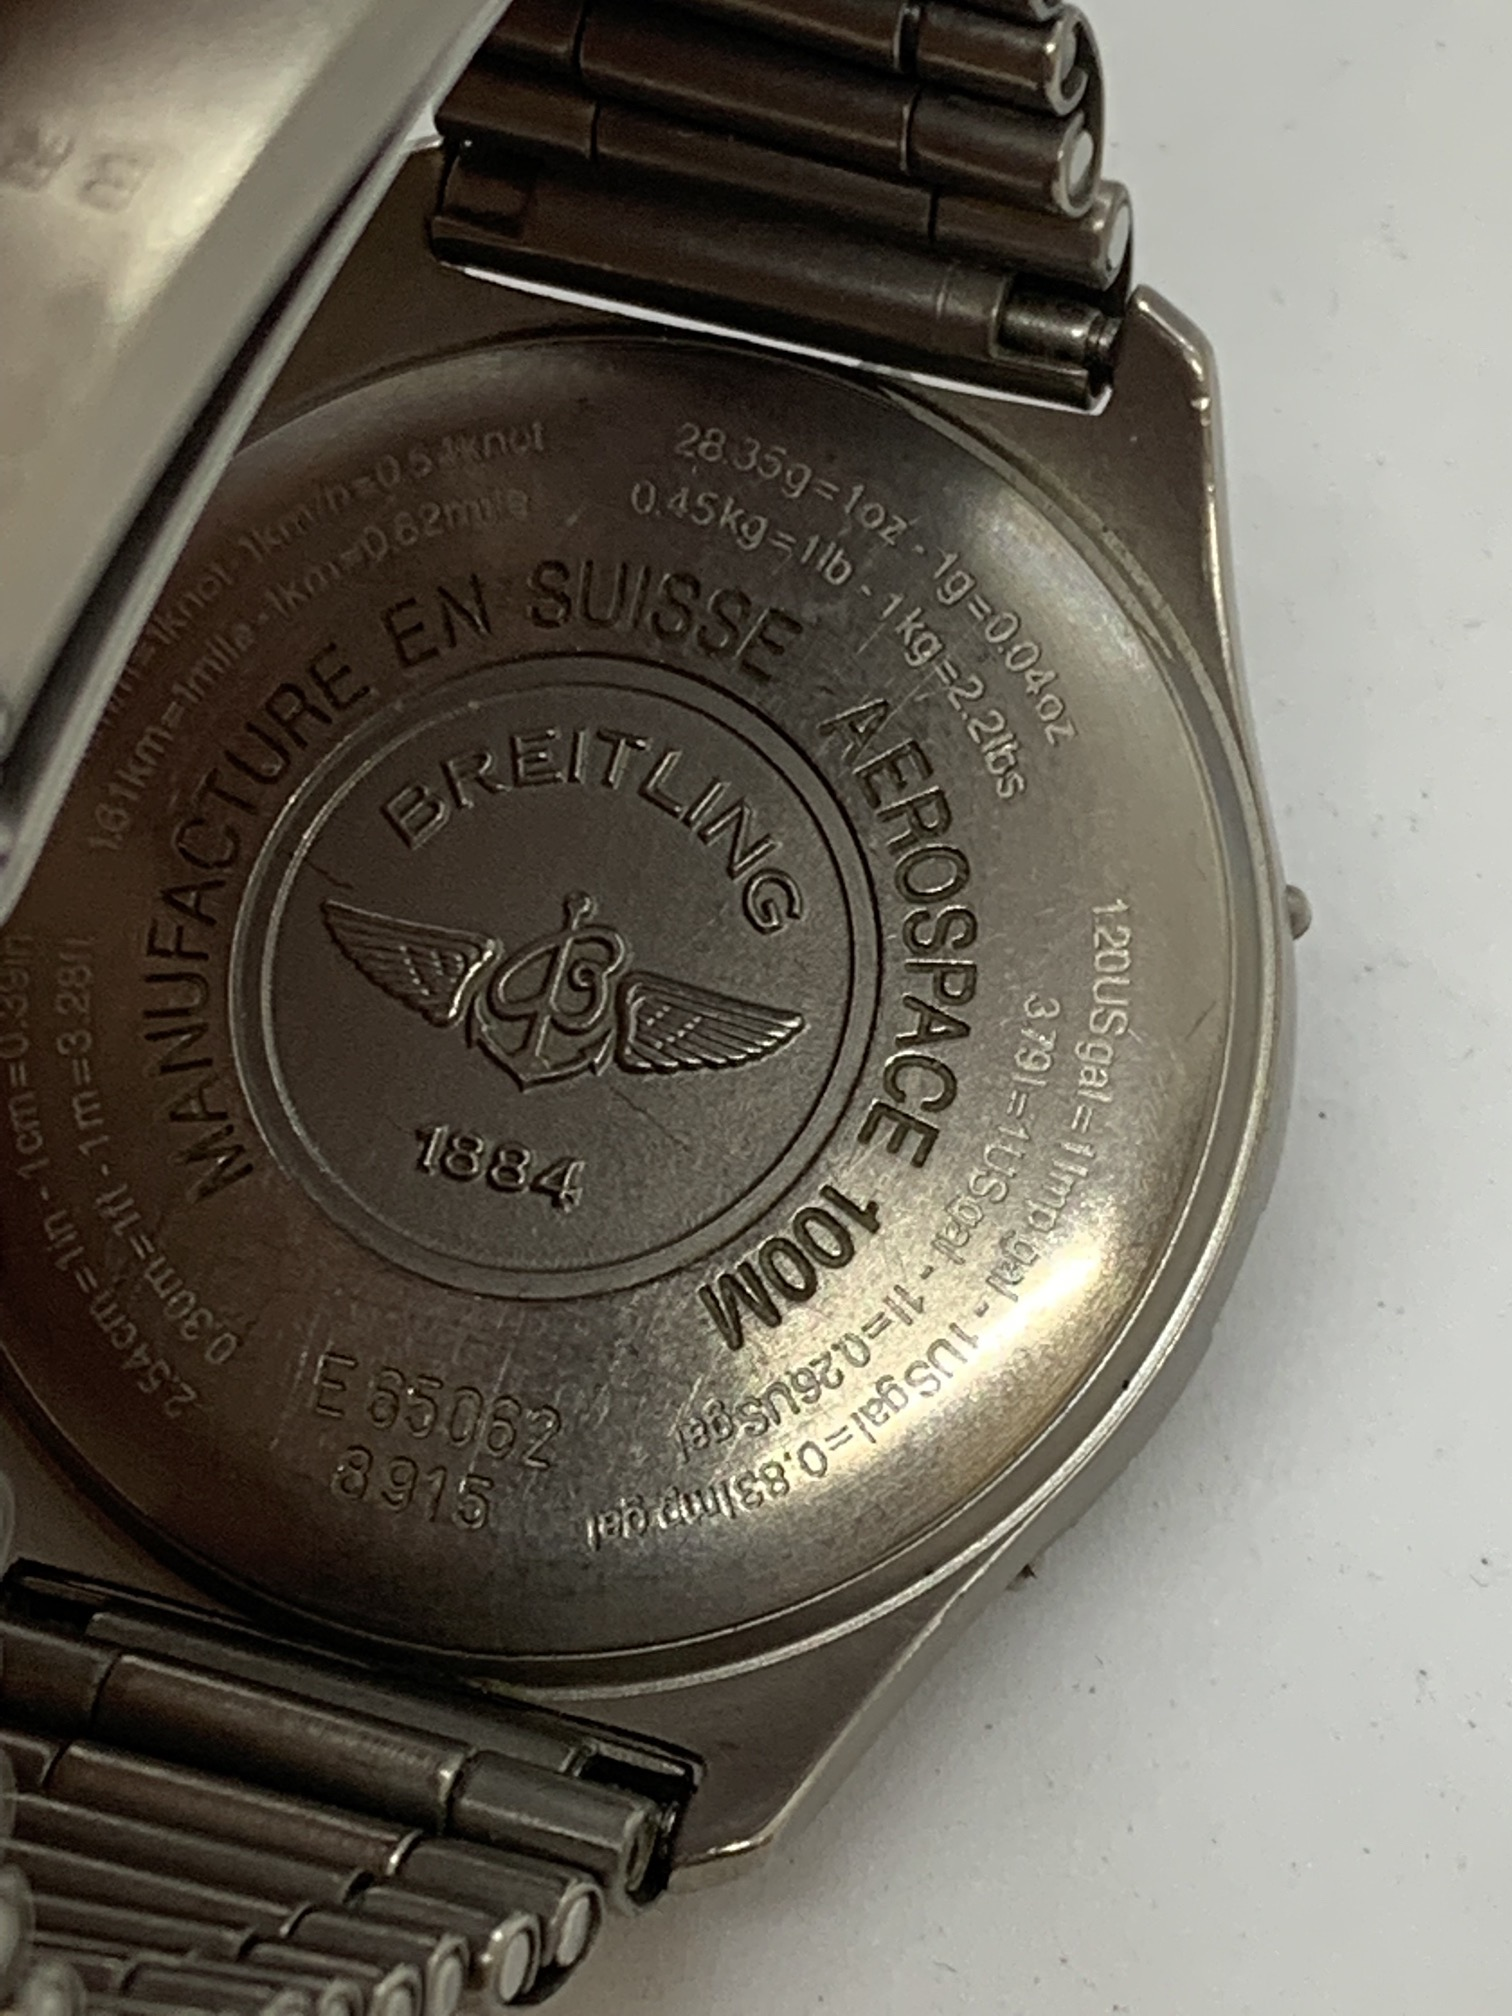 BREITLING TITANIUM WATCH A/F - Image 9 of 15